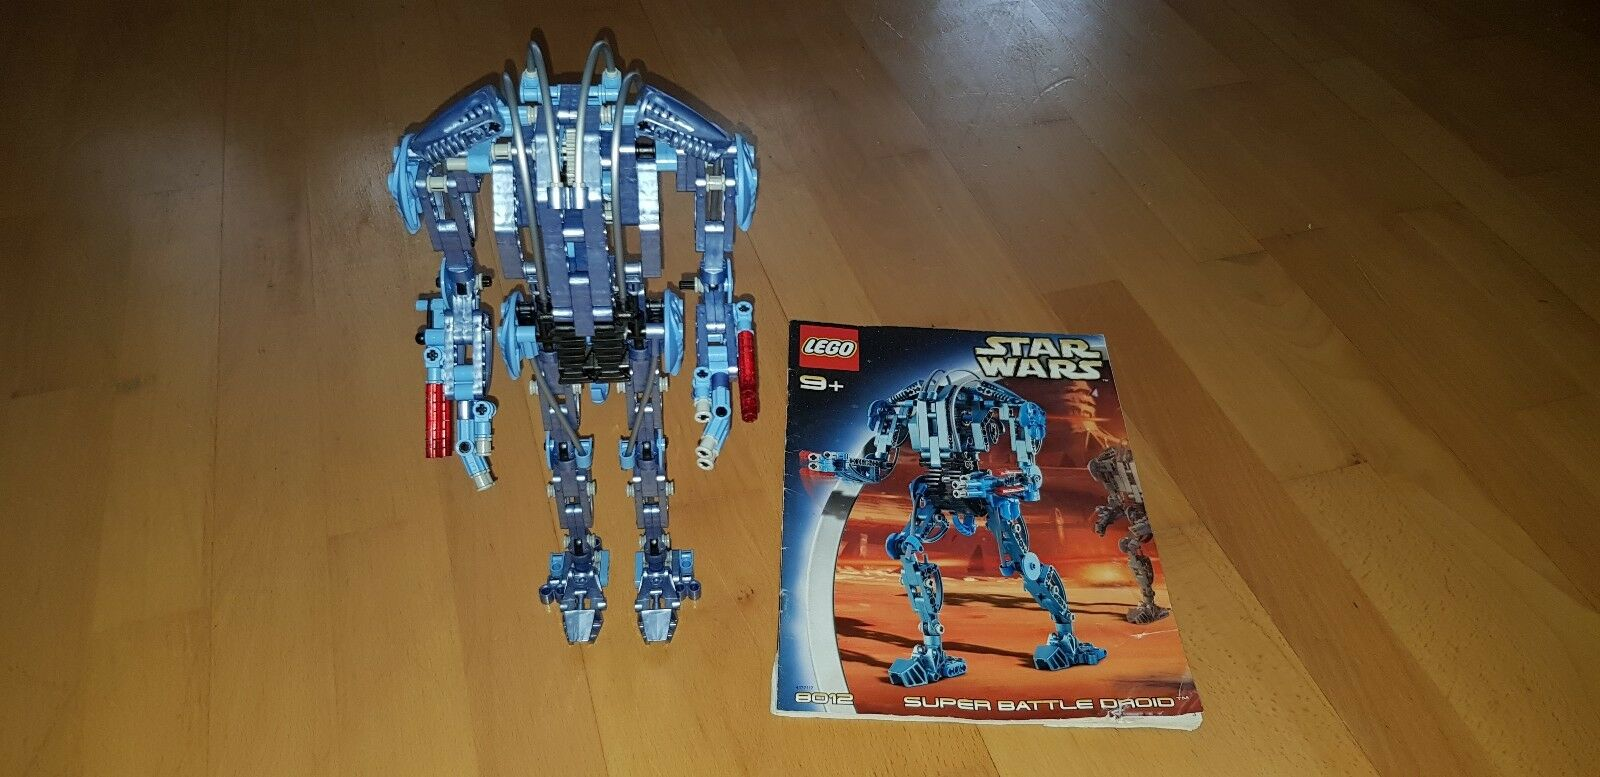 Lego Technic 8012 - Star Wars Super Battle Droid